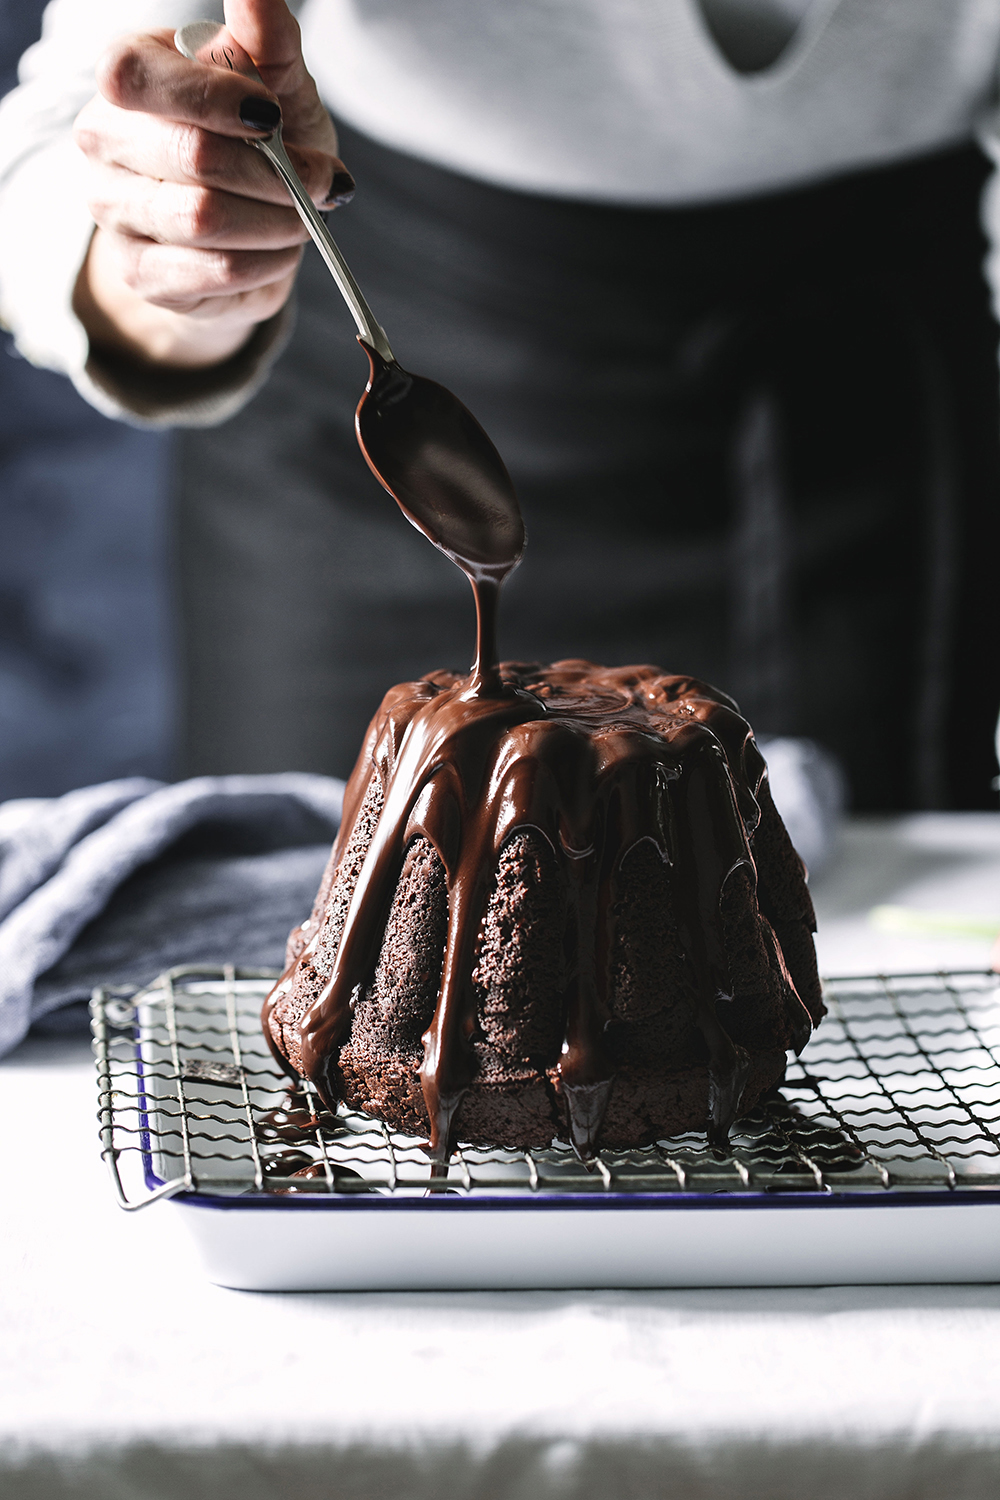 Glazed Chocolate Cake